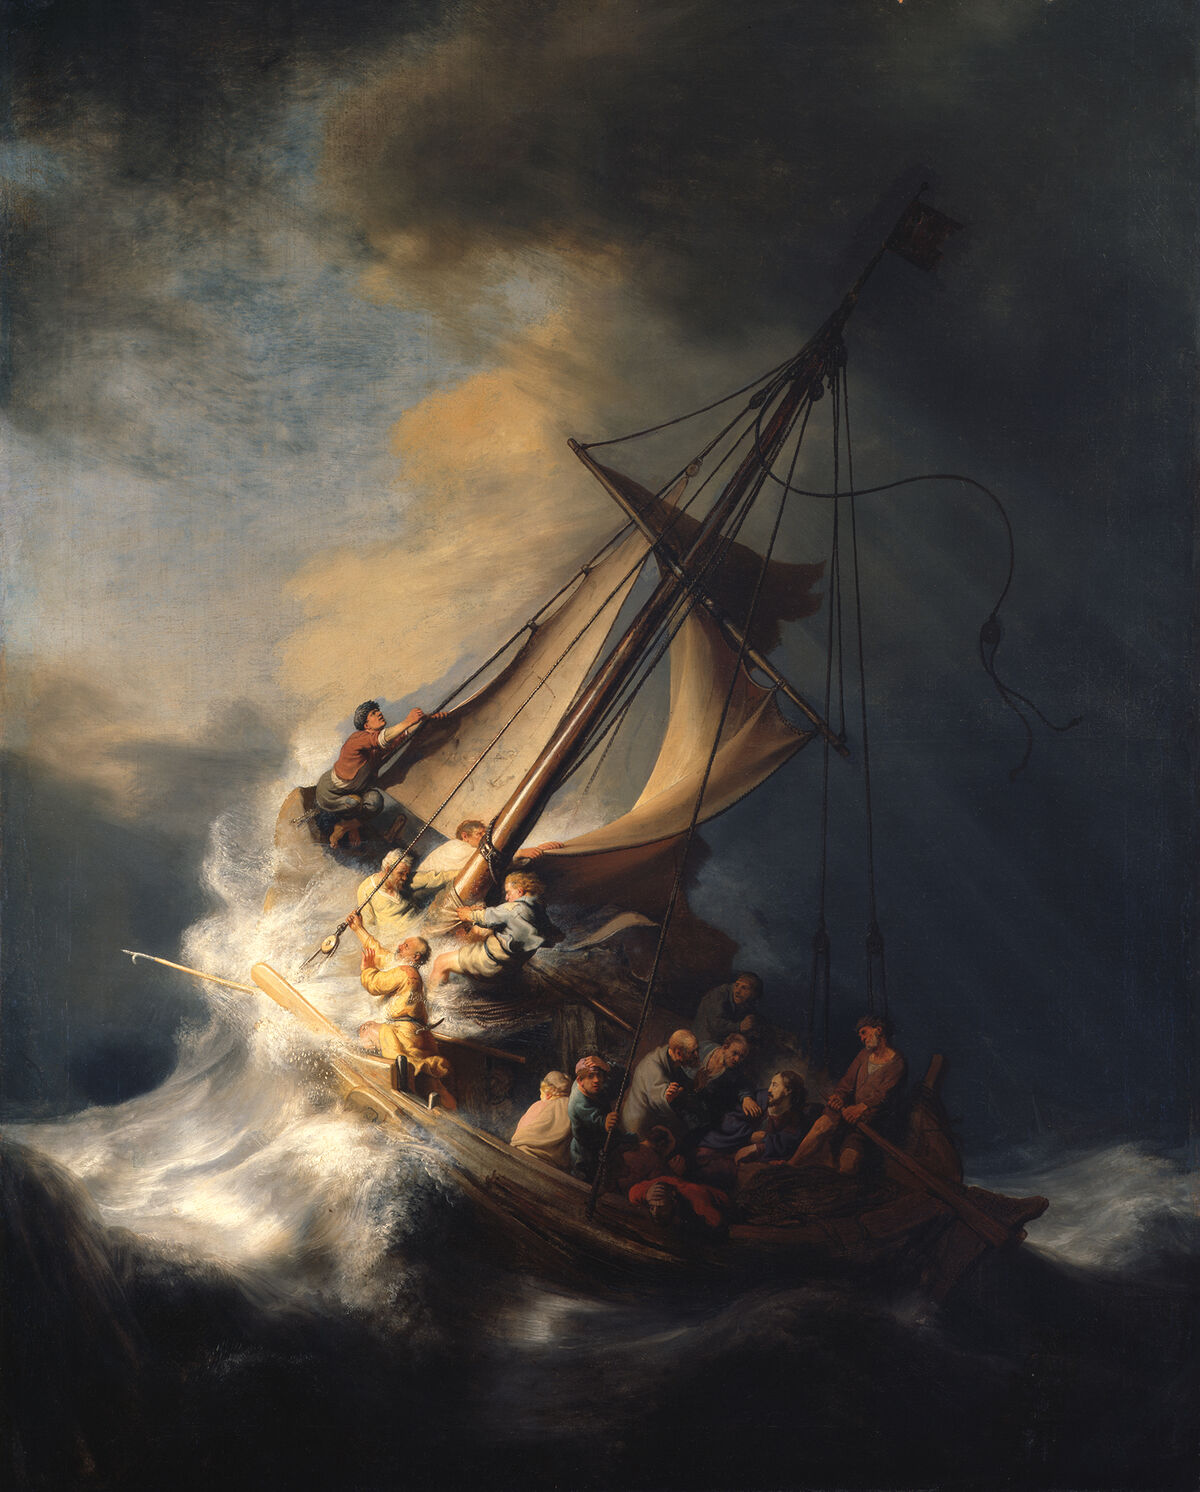 Rembrandt van Rijn, Christ in the Storm on the Sea of Galilee, 1633. Photo via the Isabella Stewart Gardner Museum.